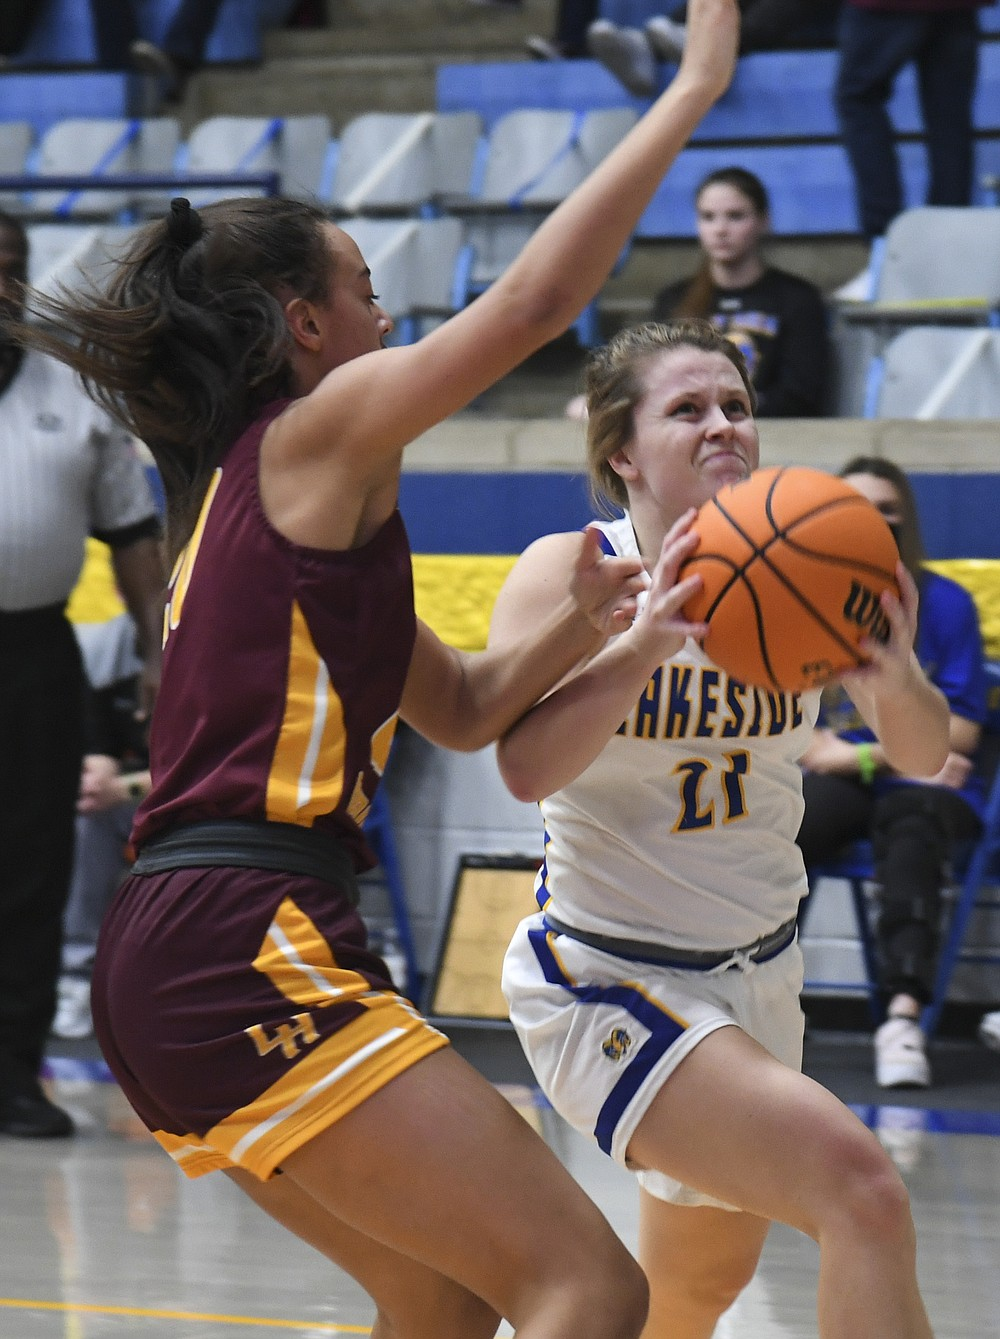 Lakeside's Erika Bittinger (21) goes for a basket as Lake Hamilton's Audri Winfrey (20) defends during Tuesday's game at Lakeside Athletic Complex. - Photo by Grace Brown of The Sentinel-Record